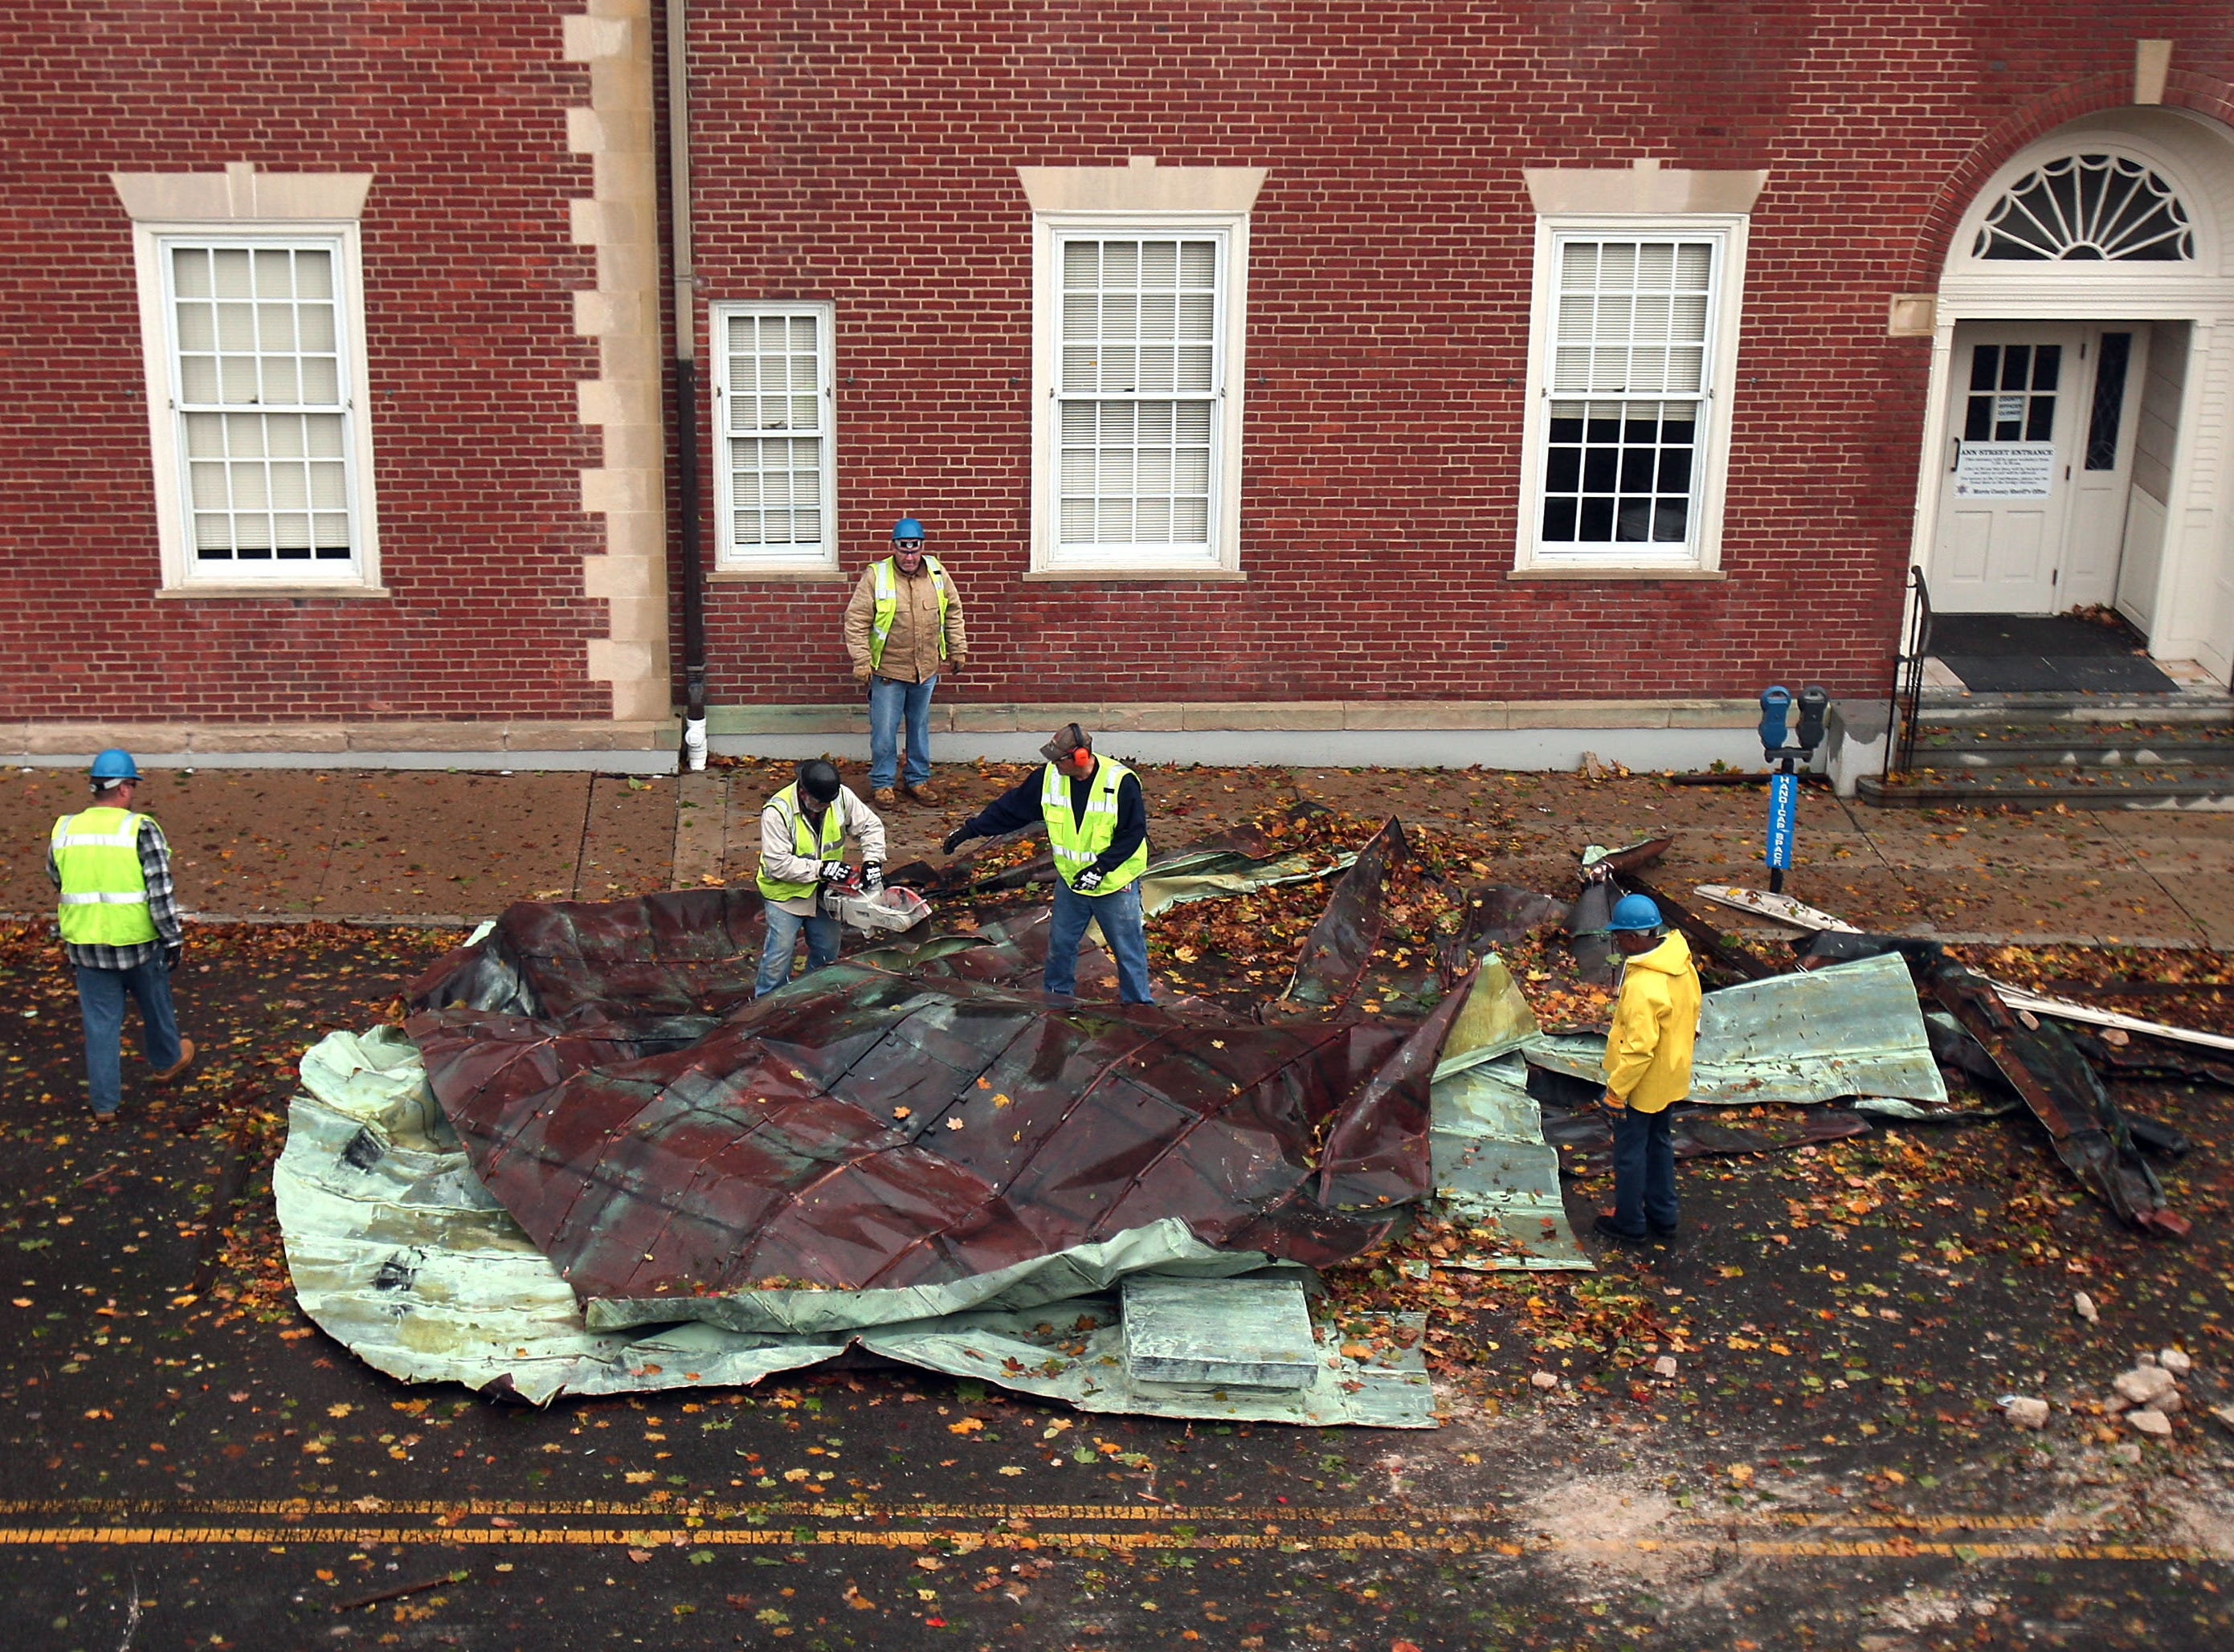 Morristown, NJ-- October 30, 2012--County grounds workers clean up after copper roofing from the Morris County Courthouse was blown off the roof due to heavy winds from Hurricane Sandy. 